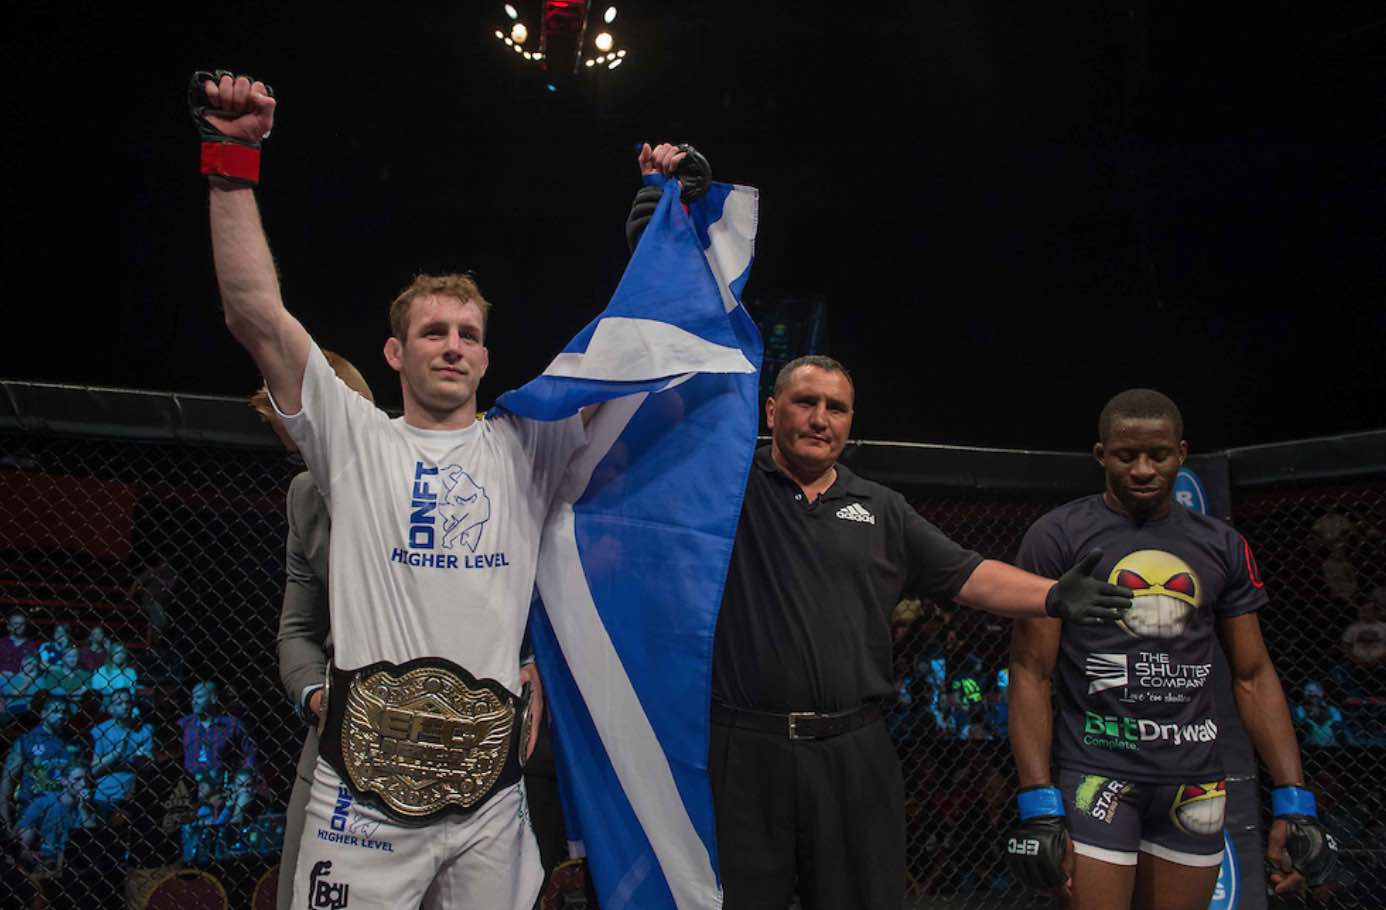 MMA fighter Daniel Henry takes the Featherweight Title at EFC 57